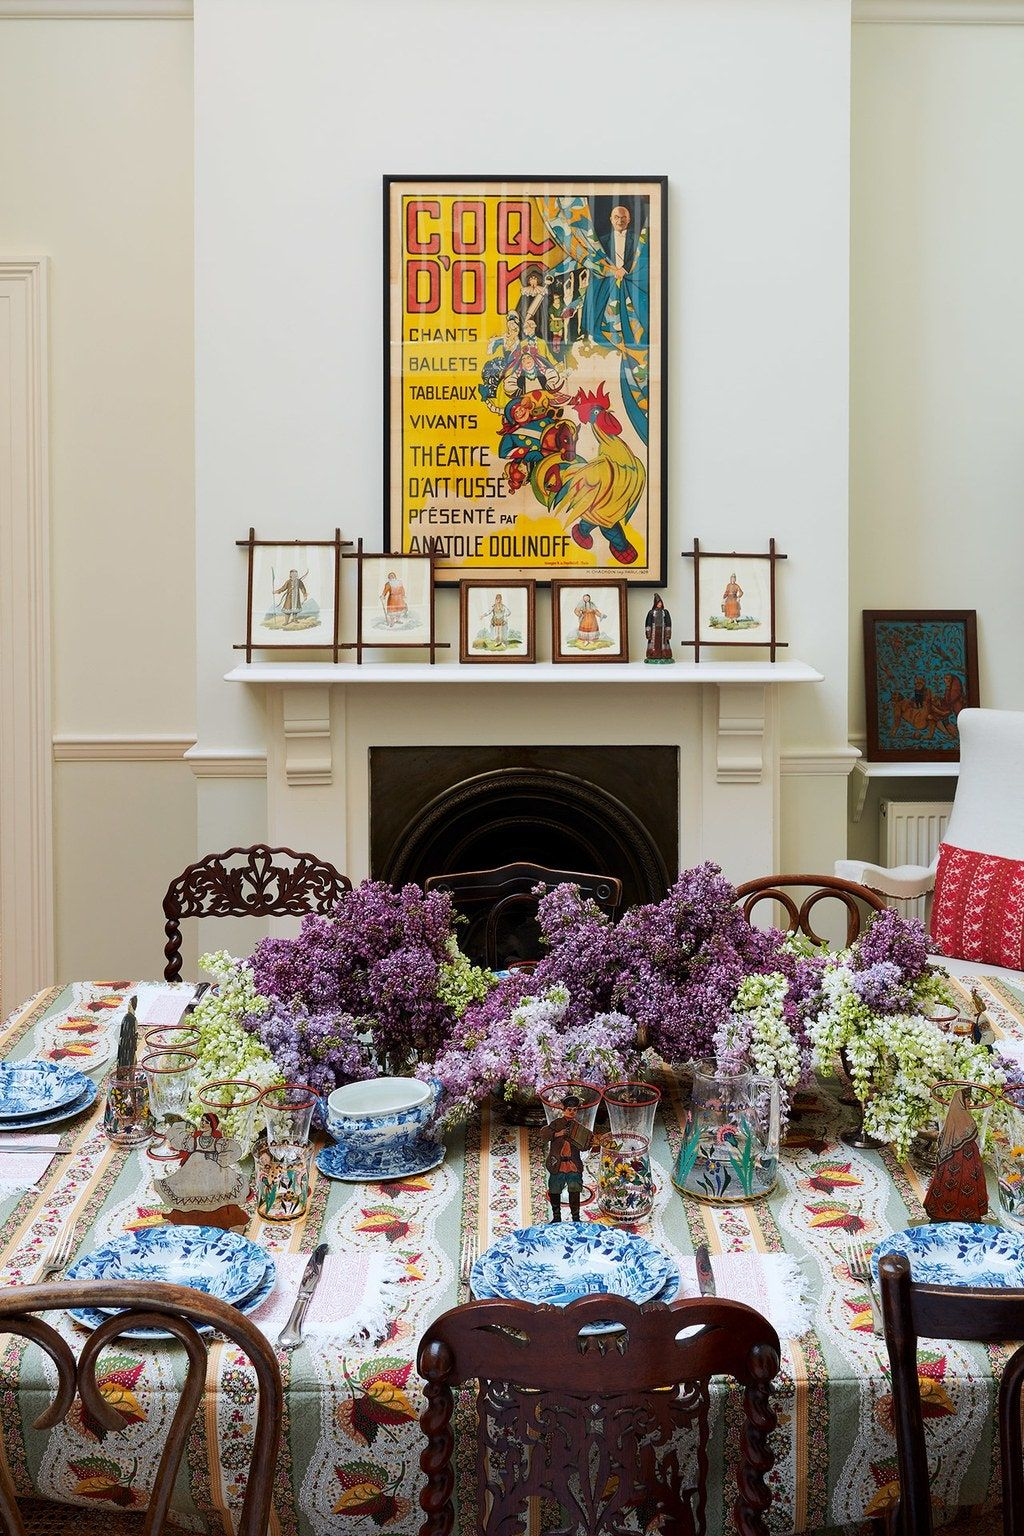 Nathalie FarmanFarma's Expert Guide To Decorating With